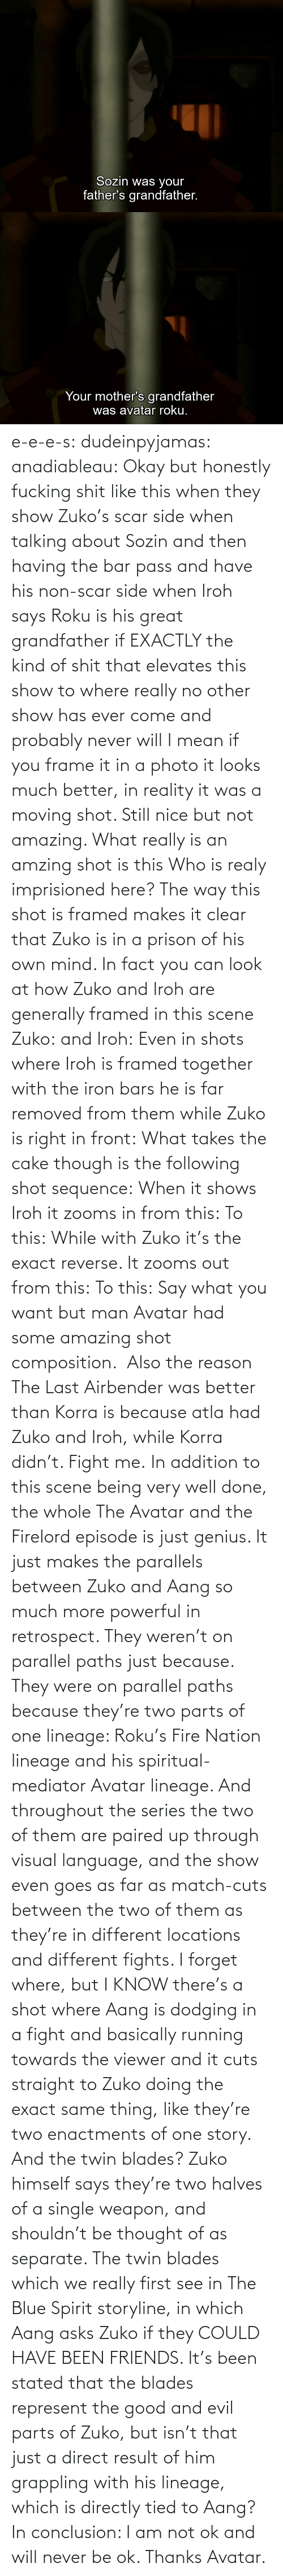 Fire, Friends, and Target: e-e-e-s: dudeinpyjamas:   anadiableau: Okay but honestly fucking shit like this when they show Zuko's scar side when talking about Sozin and then having the bar pass and have his non-scar side when Iroh says Roku is his great grandfather if EXACTLY the kind of shit that elevates this show to where really no other show has ever come and probably never will I mean if you frame it in a photo it looks much better, in reality it was a moving shot. Still nice but not amazing. What really is an amzing shot is this Who is realy imprisioned here? The way this shot is framed makes it clear that Zuko is in a prison of his own mind. In fact you can look at how Zuko and Iroh are generally framed in this scene Zuko: and Iroh: Even in shots where Iroh is framed together with the iron bars he is far removed from them while Zuko is right in front:  What takes the cake though is the following shot sequence: When it shows Iroh it zooms in from this: To this: While with Zuko it's the exact reverse. It zooms out from this: To this: Say what you want but man Avatar had some amazing shot composition.   Also the reason The Last Airbender was better than Korra is because atla had Zuko and Iroh, while Korra didn't. Fight me.    In addition to this scene being very well done, the whole The Avatar and the Firelord episode is just genius.  It just makes the parallels between Zuko and Aang so much more powerful in retrospect.  They weren't on parallel paths just because.  They were on parallel paths because they're two parts of one lineage: Roku's Fire Nation lineage and his spiritual-mediator Avatar lineage.  And throughout the series the two of them are paired up through visual language, and the show even goes as far as match-cuts between the two of them as they're in different locations and different fights.  I forget where, but I KNOW there's a shot where Aang is dodging in a fight and basically running towards the viewer and it cuts straight to Zuko doing the exact same thing, like they're two enactments of one story.   And the twin blades?  Zuko himself says they're two halves of a single weapon, and shouldn't be thought of as separate.  The twin blades which we really first see in The Blue Spirit storyline, in which Aang asks Zuko if they COULD HAVE BEEN FRIENDS.  It's been stated that the blades represent the good and evil parts of Zuko, but isn't that just a direct result of him grappling with his lineage, which is directly tied to Aang? In conclusion: I am not ok and will never be ok.  Thanks Avatar.